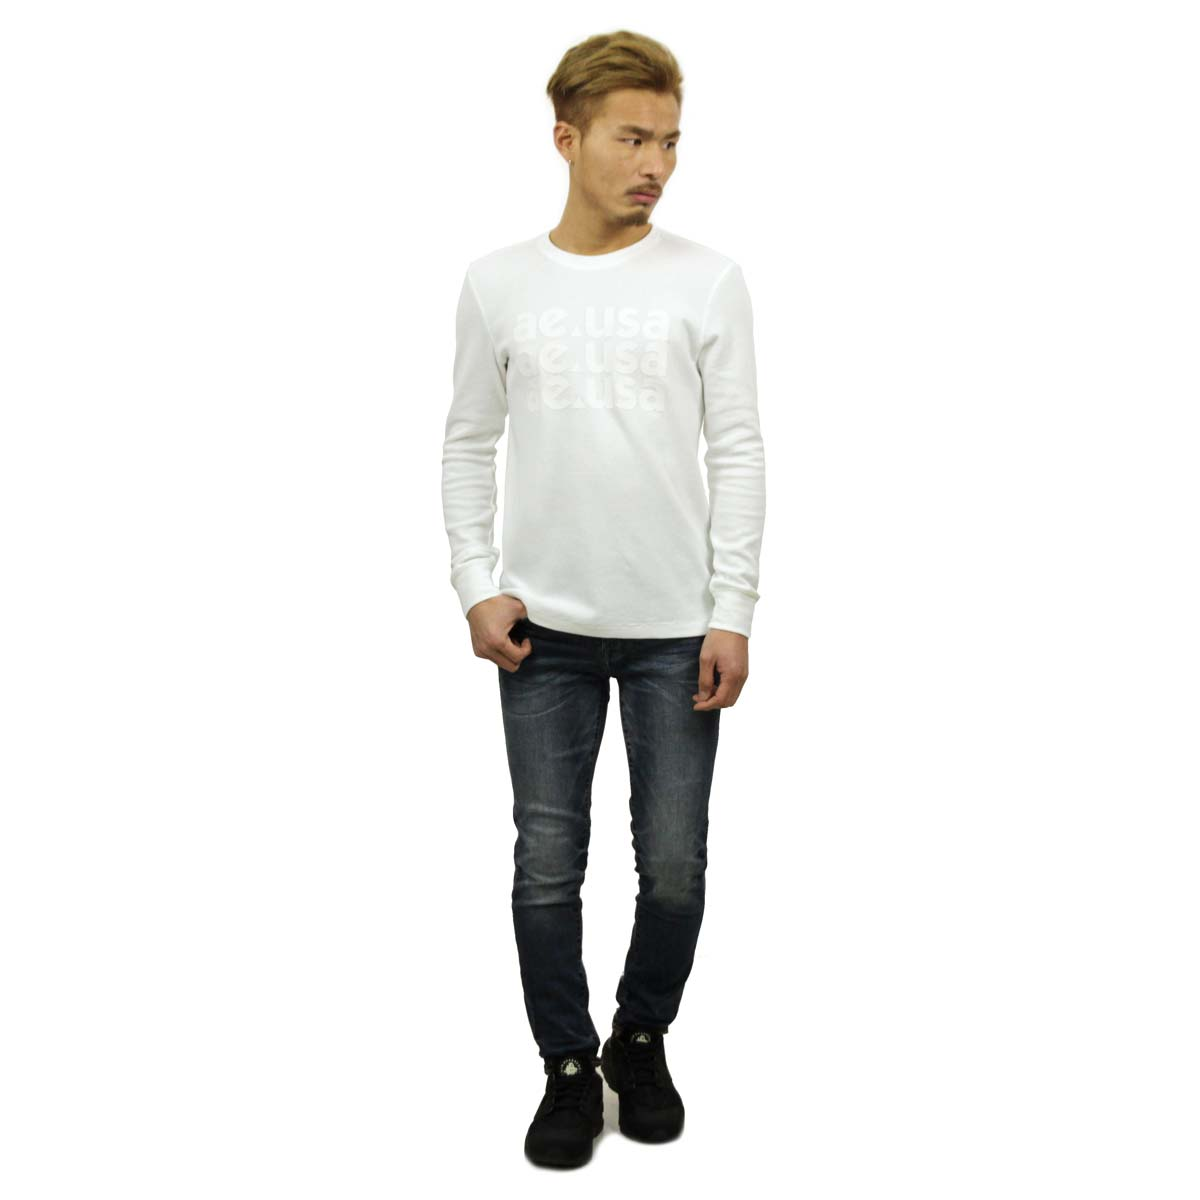 4a19a4d8b ... American eagle AMERICAN EAGLE regular article men thermal crew neck  long sleeves T-shirt Ron ...